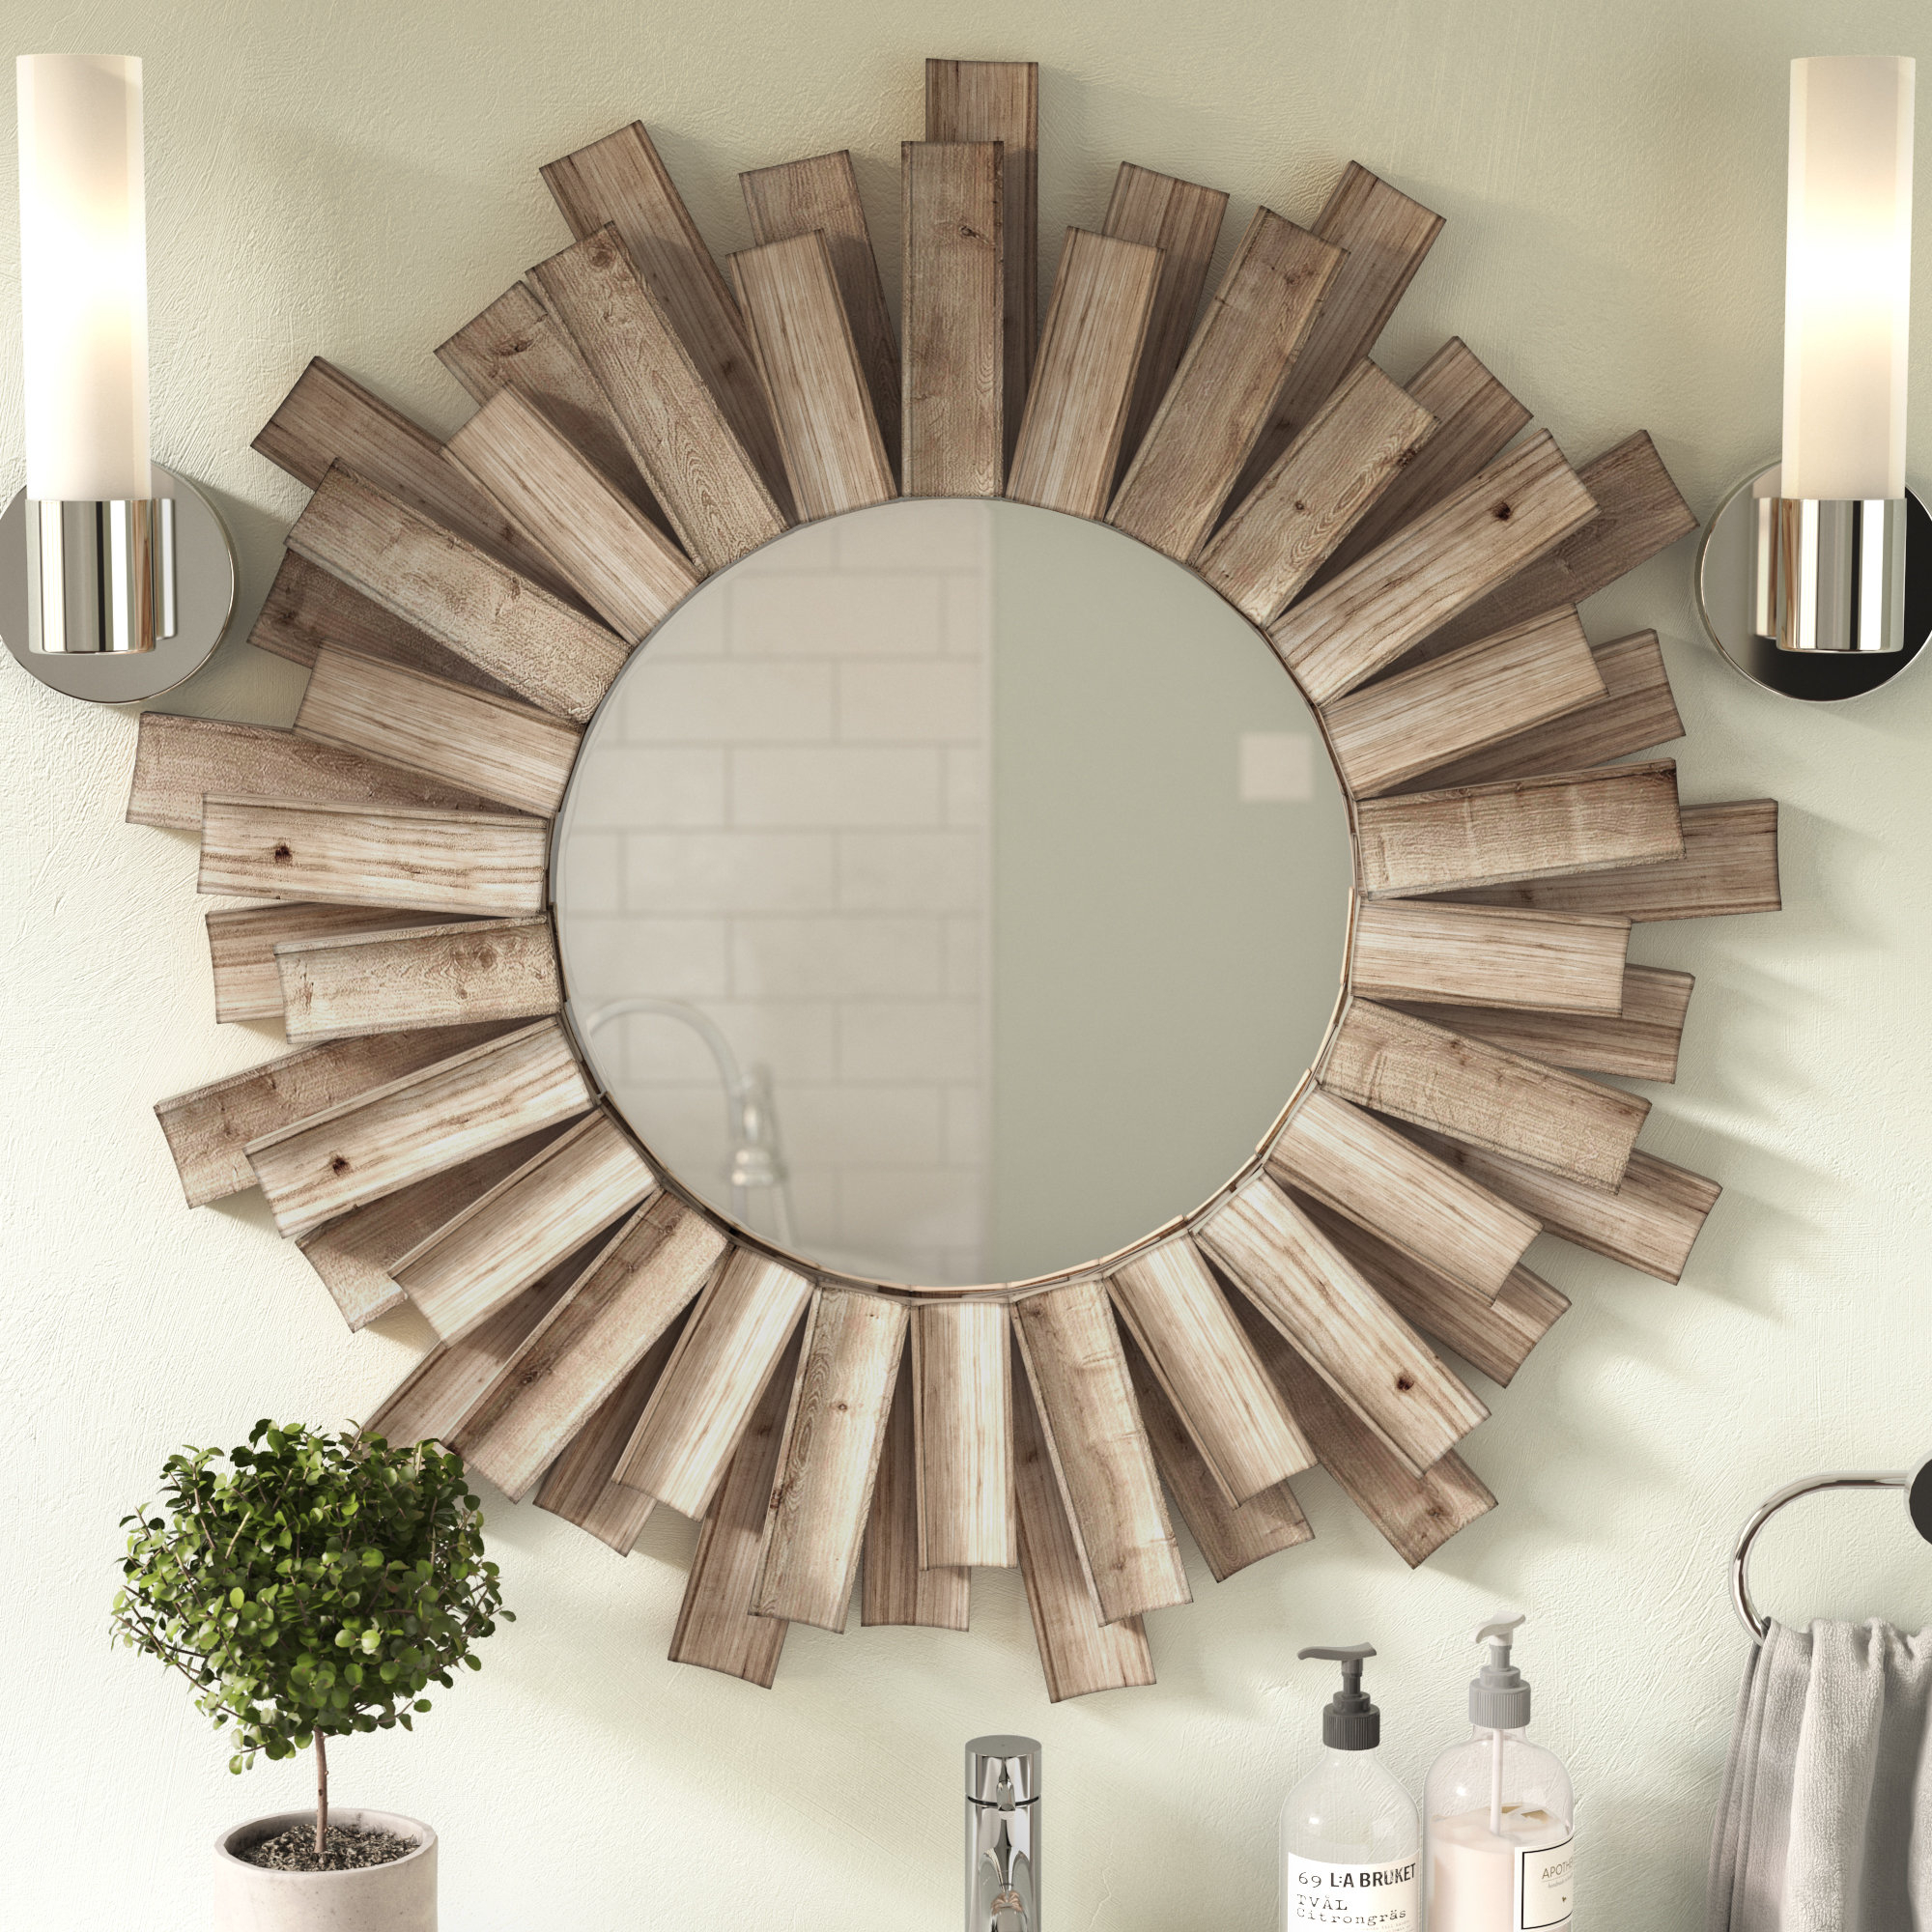 Details About Union Rustic Perillo Burst Wood Accent Mirror Within Wood Accent Mirrors (Photo 1 of 30)